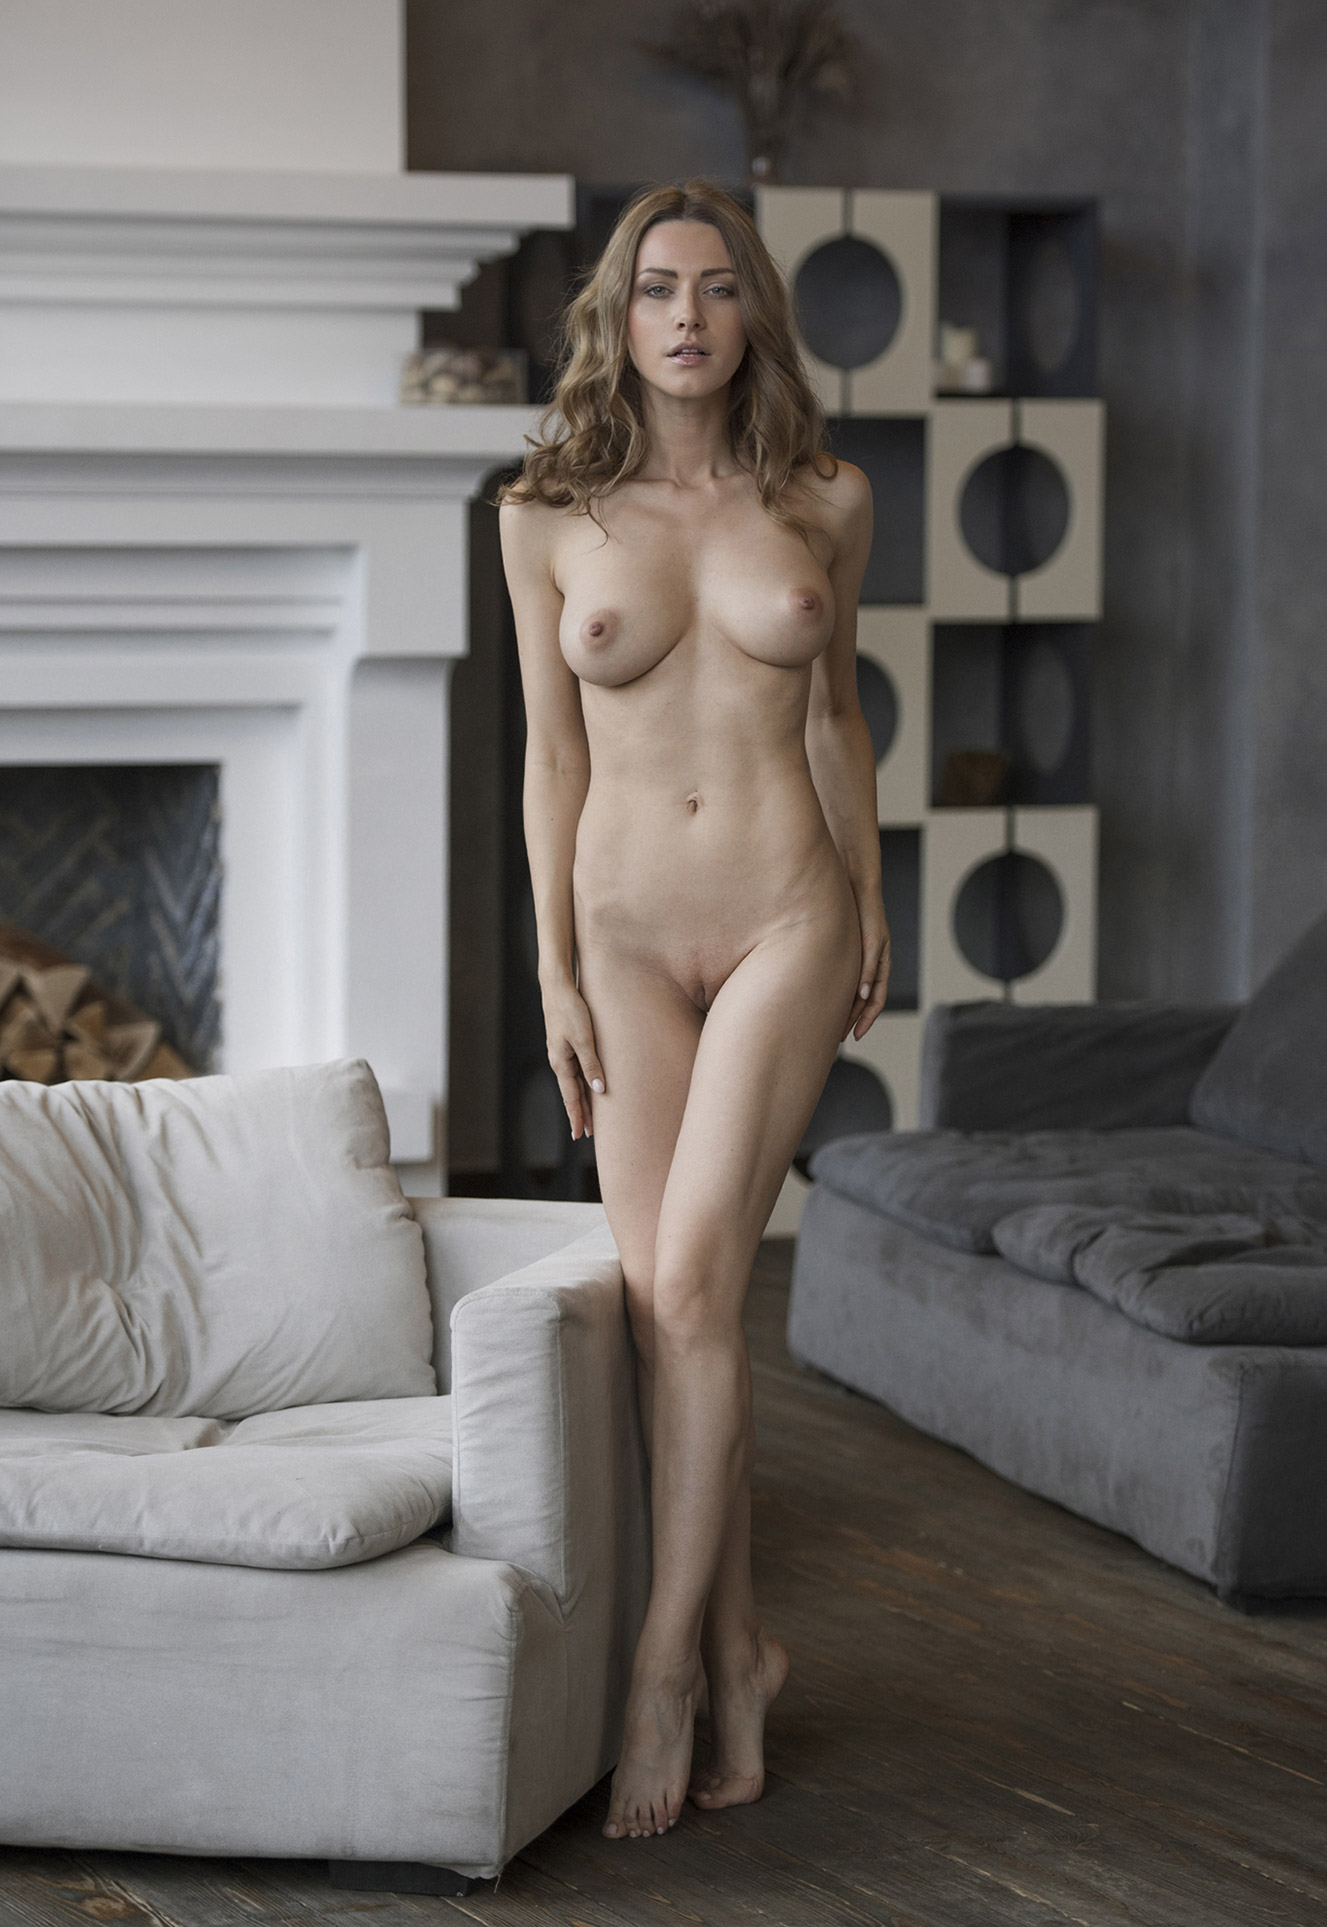 From Russia with Love / Olga Alberti nude by Martin Wieland